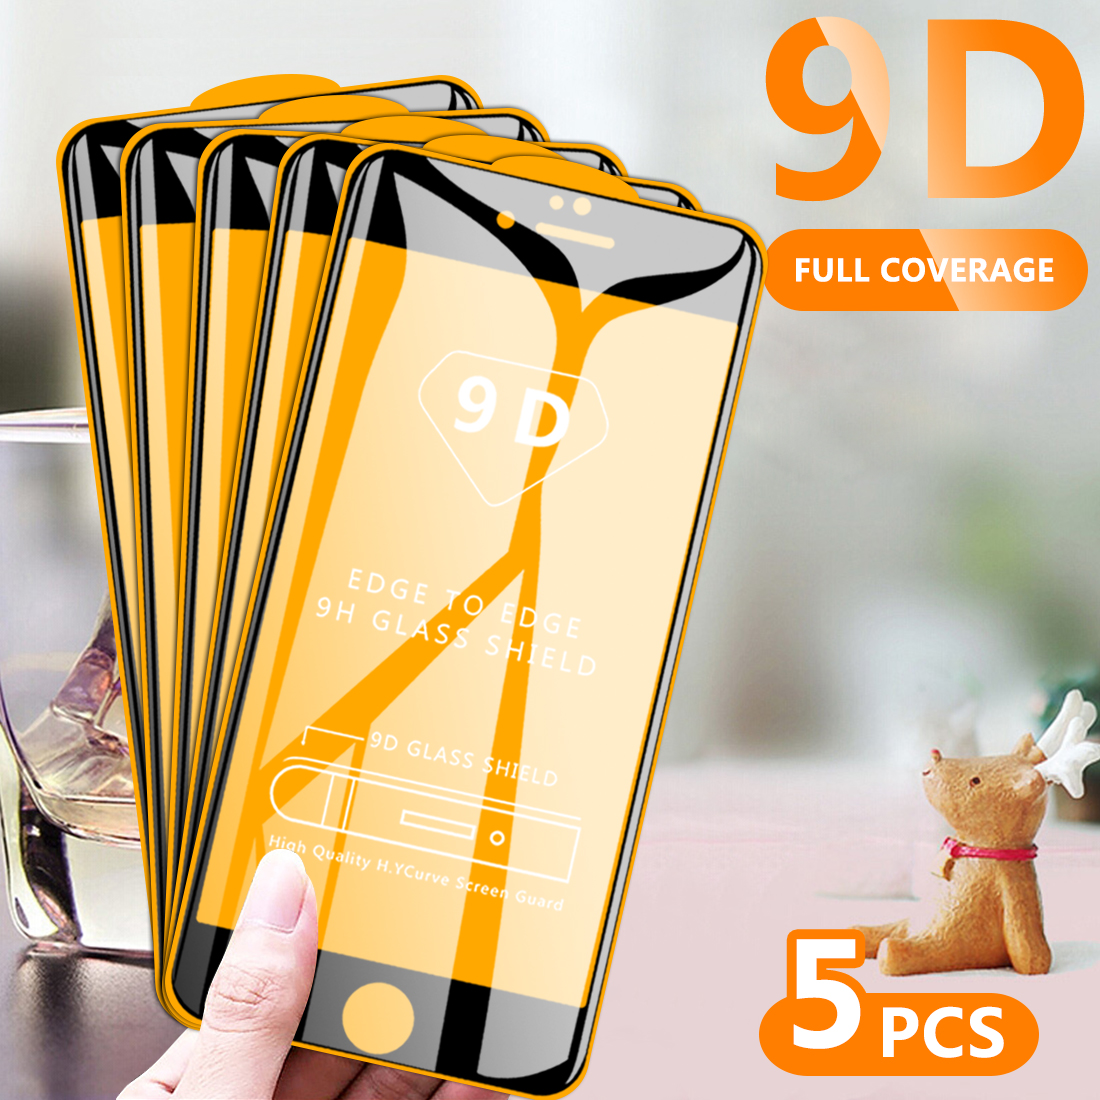 5Pcs  Full Cover Tempered GlassFor IPhone 6 6 Plus 6s 6s Plus 7 7 Plus 8 8 Plus X XS XR Xs Max 11 9D Screen Protector HD Clear